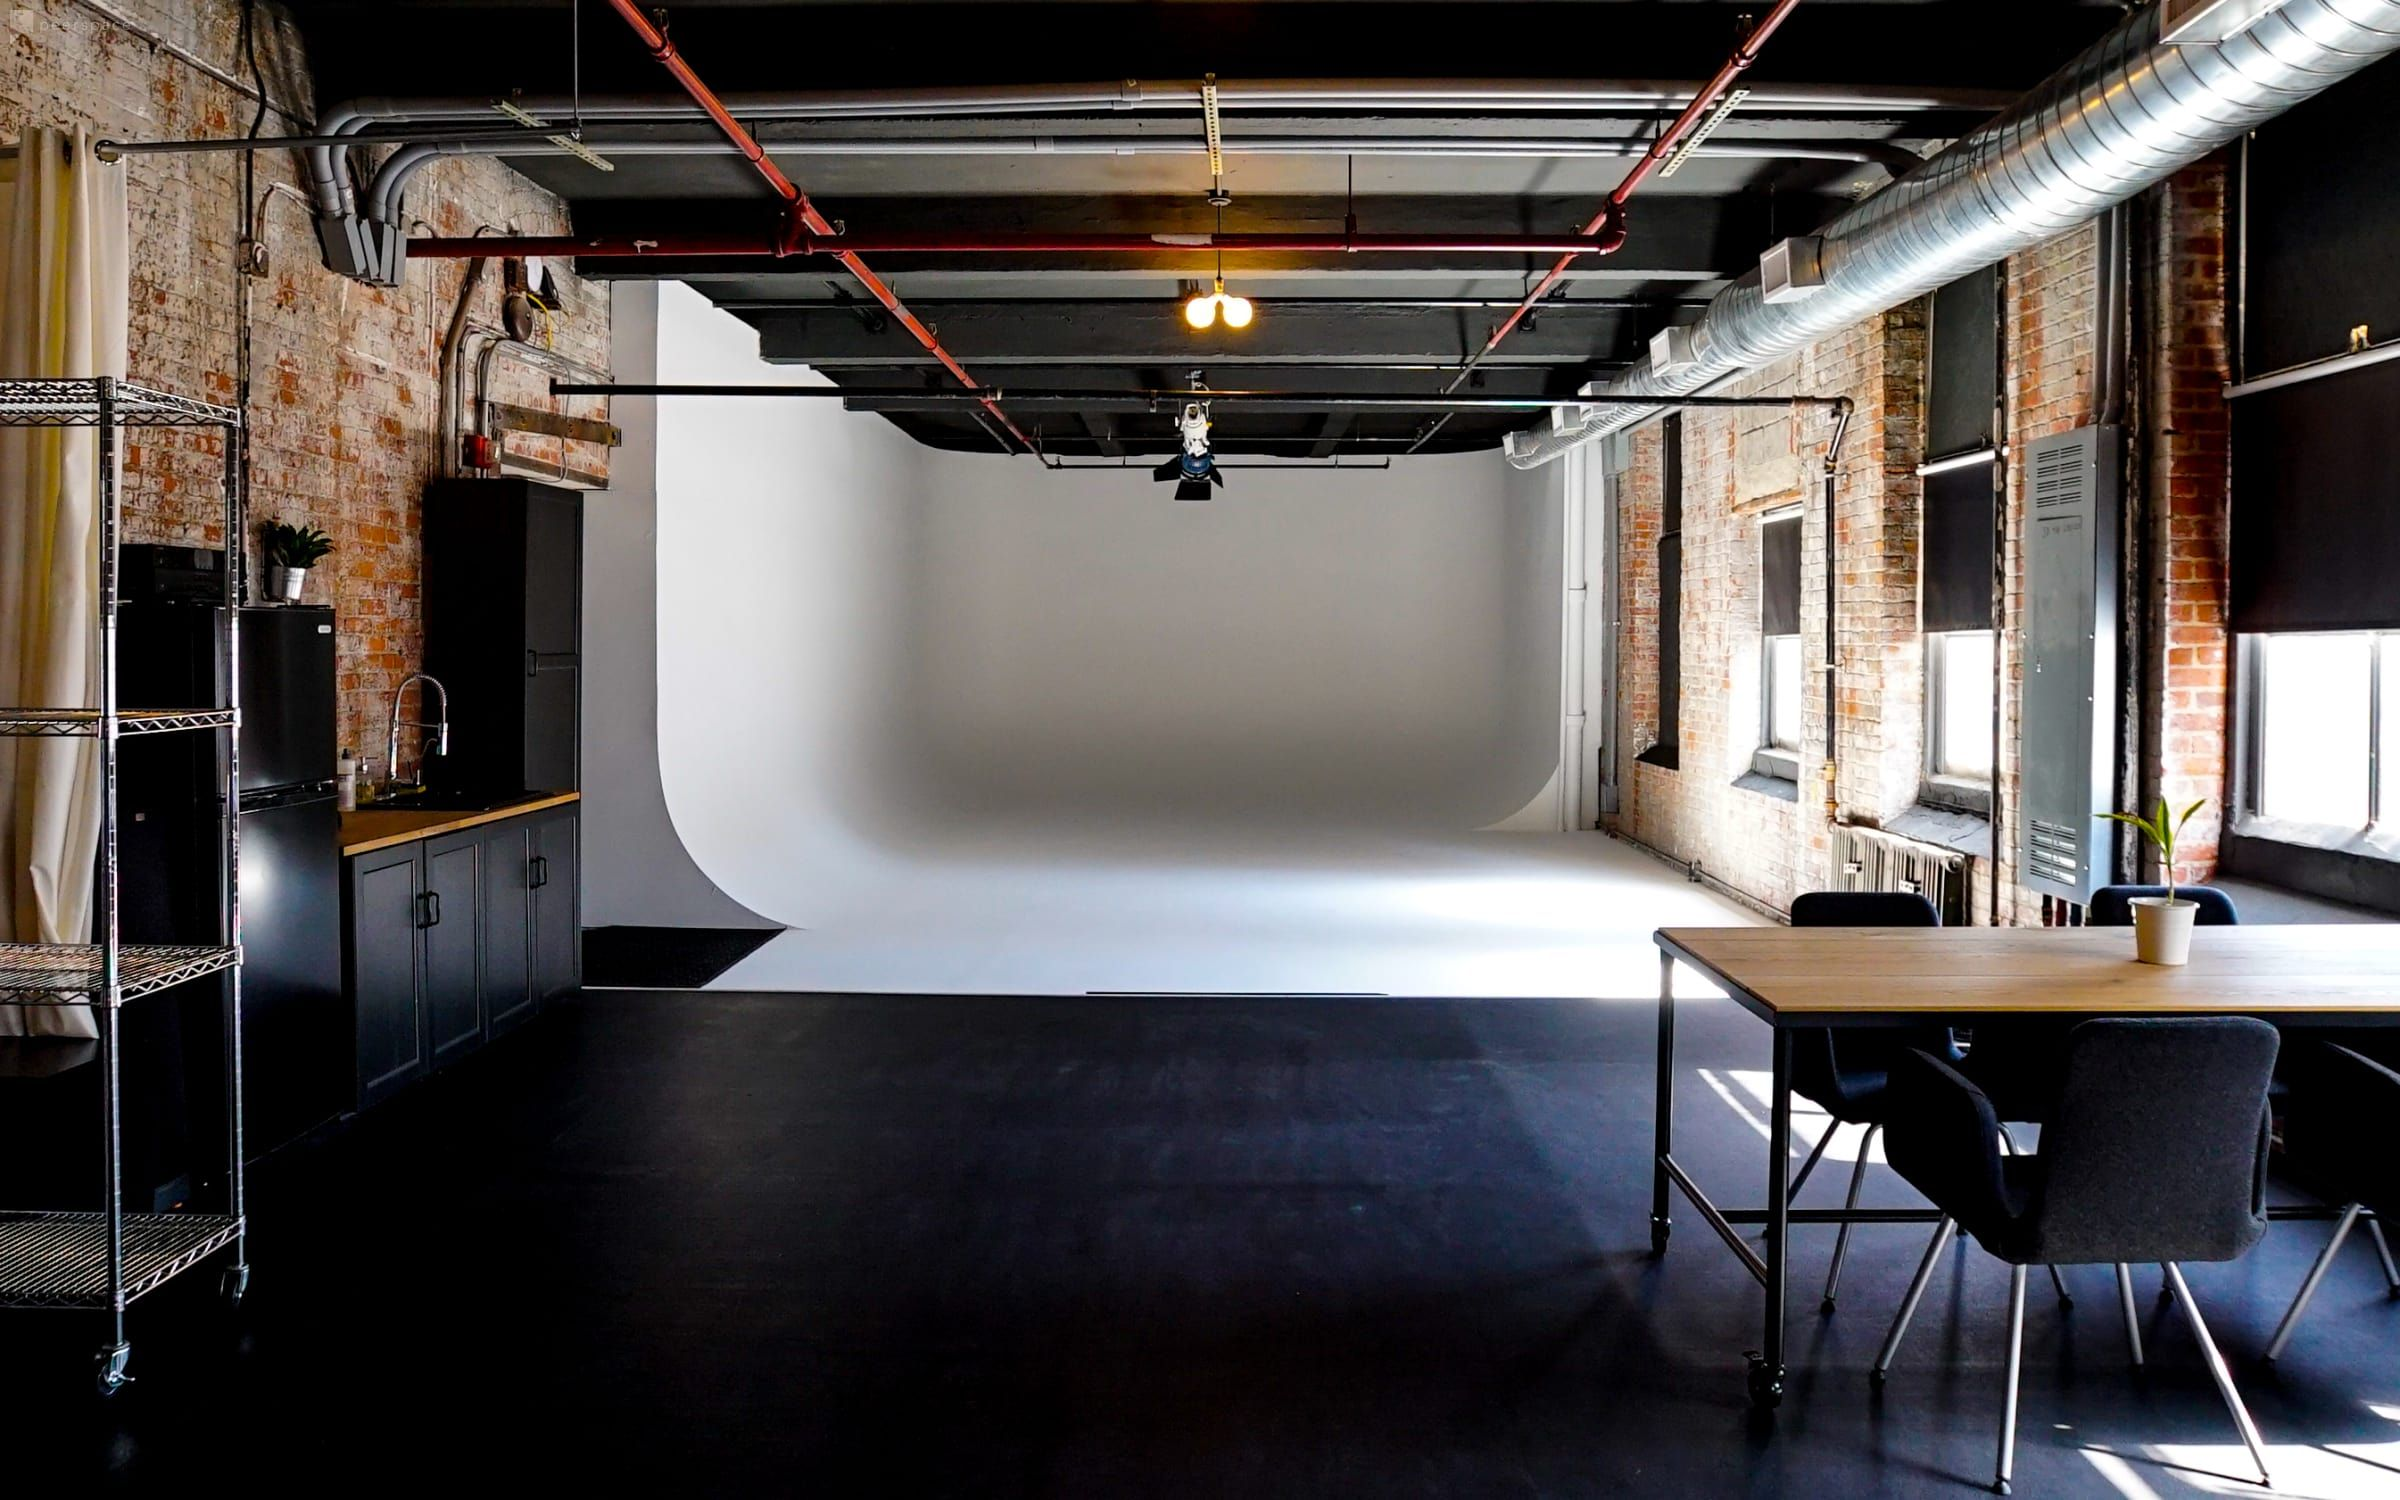 1 500 Square Feet Column Free 300 Amp 3 Phase Power Three Wall Cyclorama 30 X 20 X 12 Full Lig Coworking Space Design Space Design Studio Space